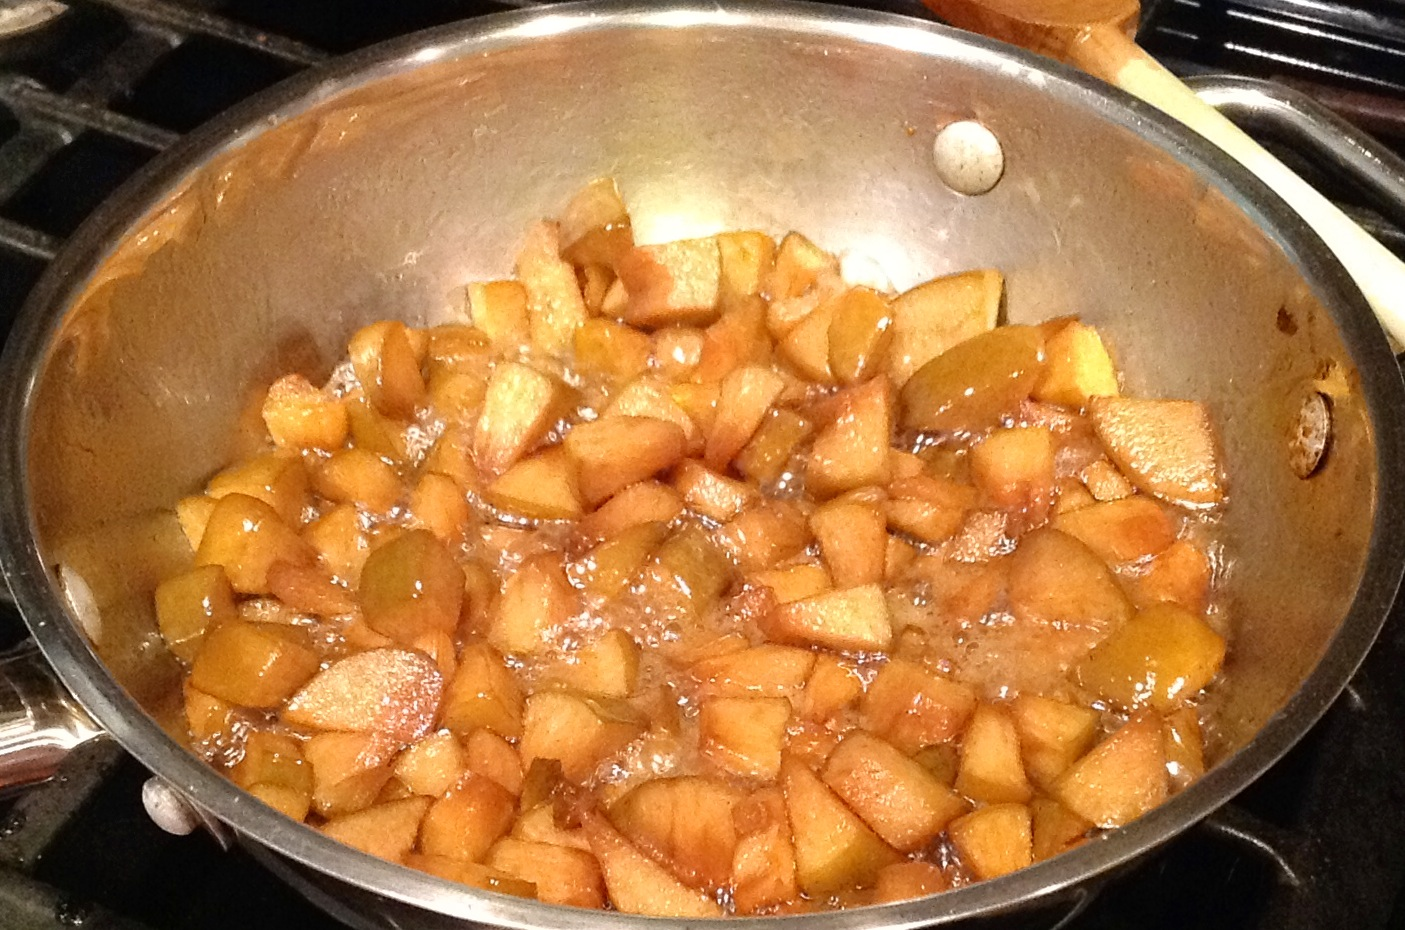 Bourbon-soaked apples strained from Apple Pie Bourbon